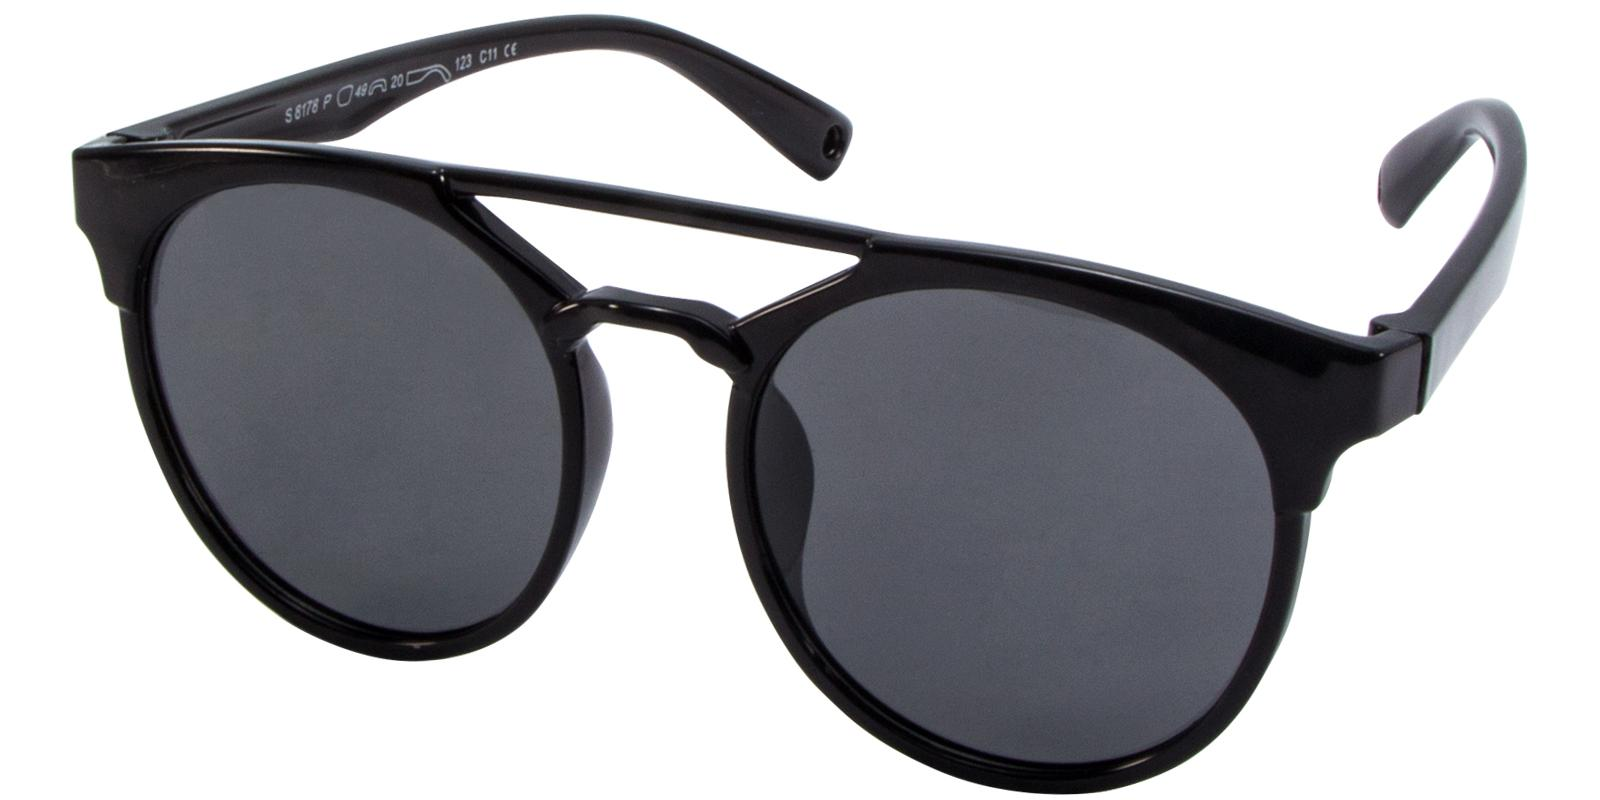 Norbter Black TR Sunglasses , UniversalBridgeFit Frames from ABBE Glasses